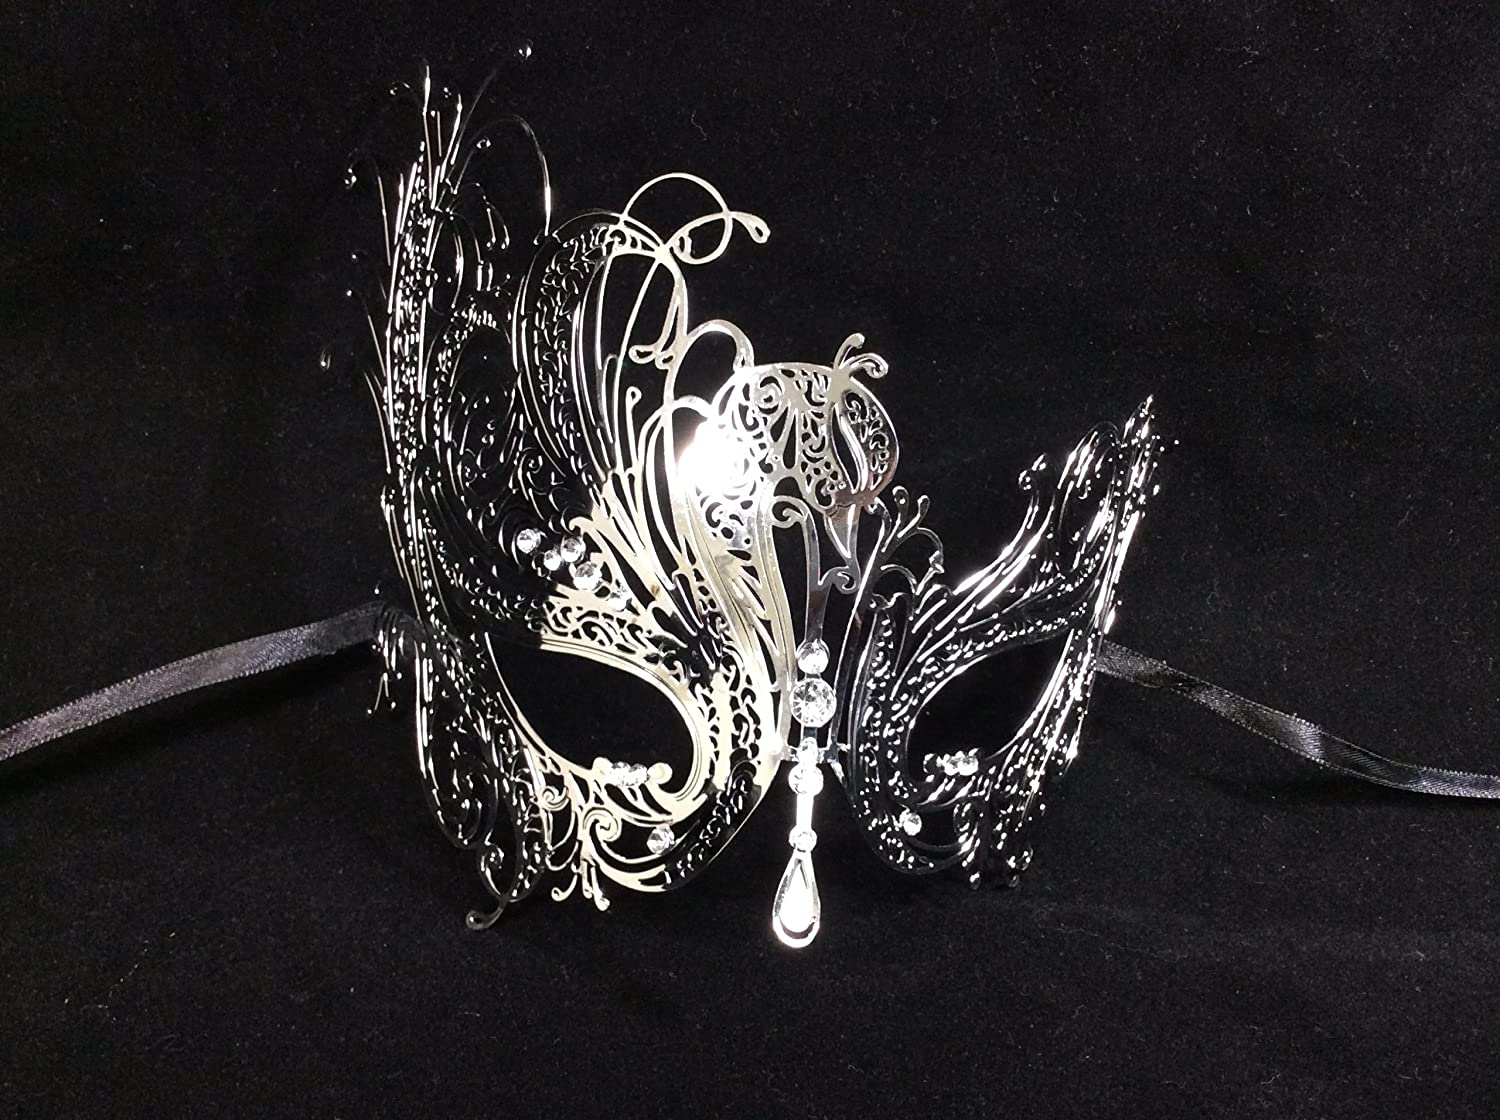 Perfect Couple Mardi Gras Long Swan Party Halloween Ball Prom by Unknown 2 Piece Silver Colored Set His /& Hers Masquerade Couples Venetian Design Masks